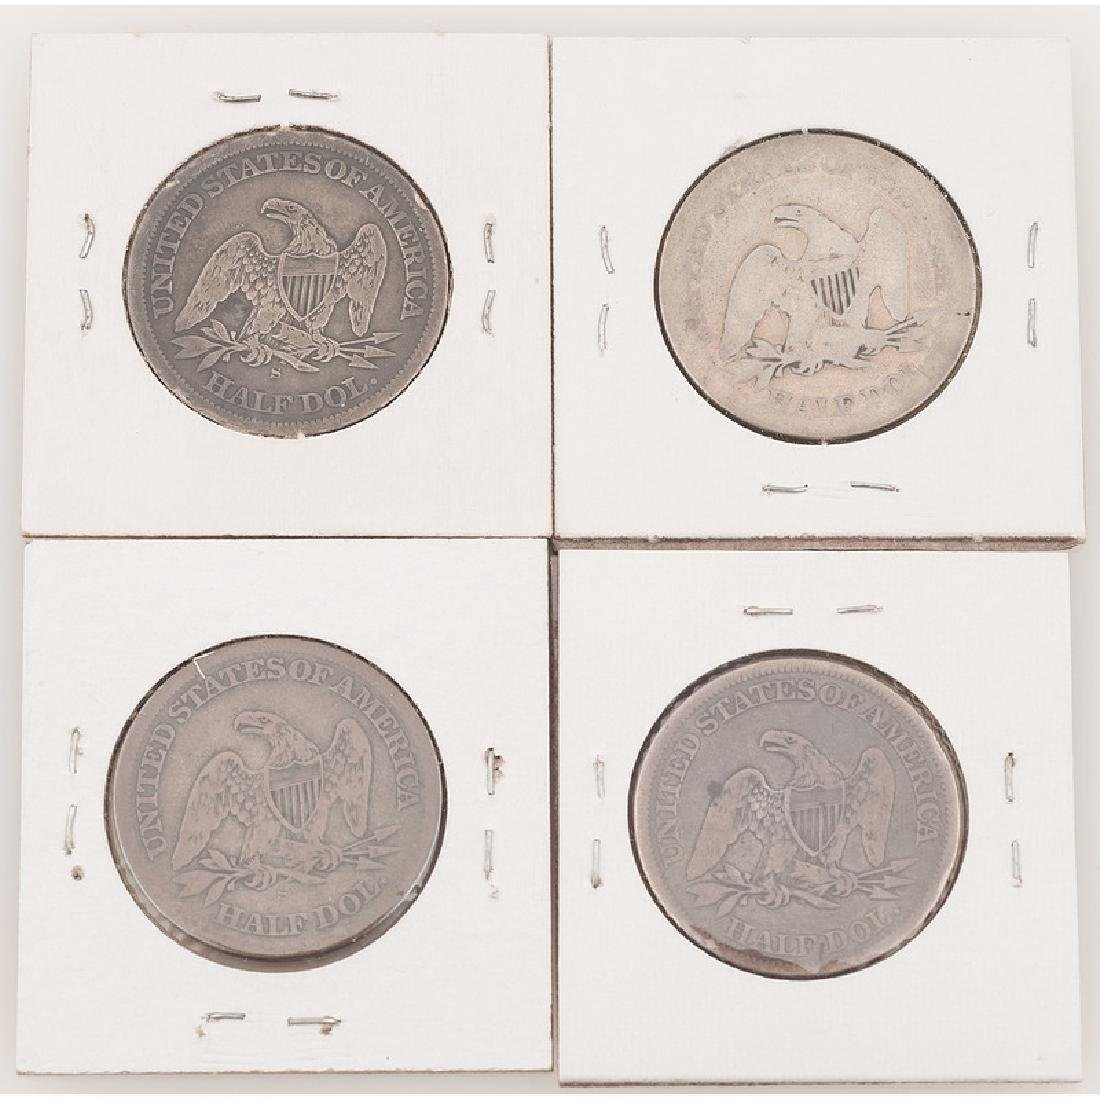 United States Liberty Seated Half Dollars 1863-1864 - 2